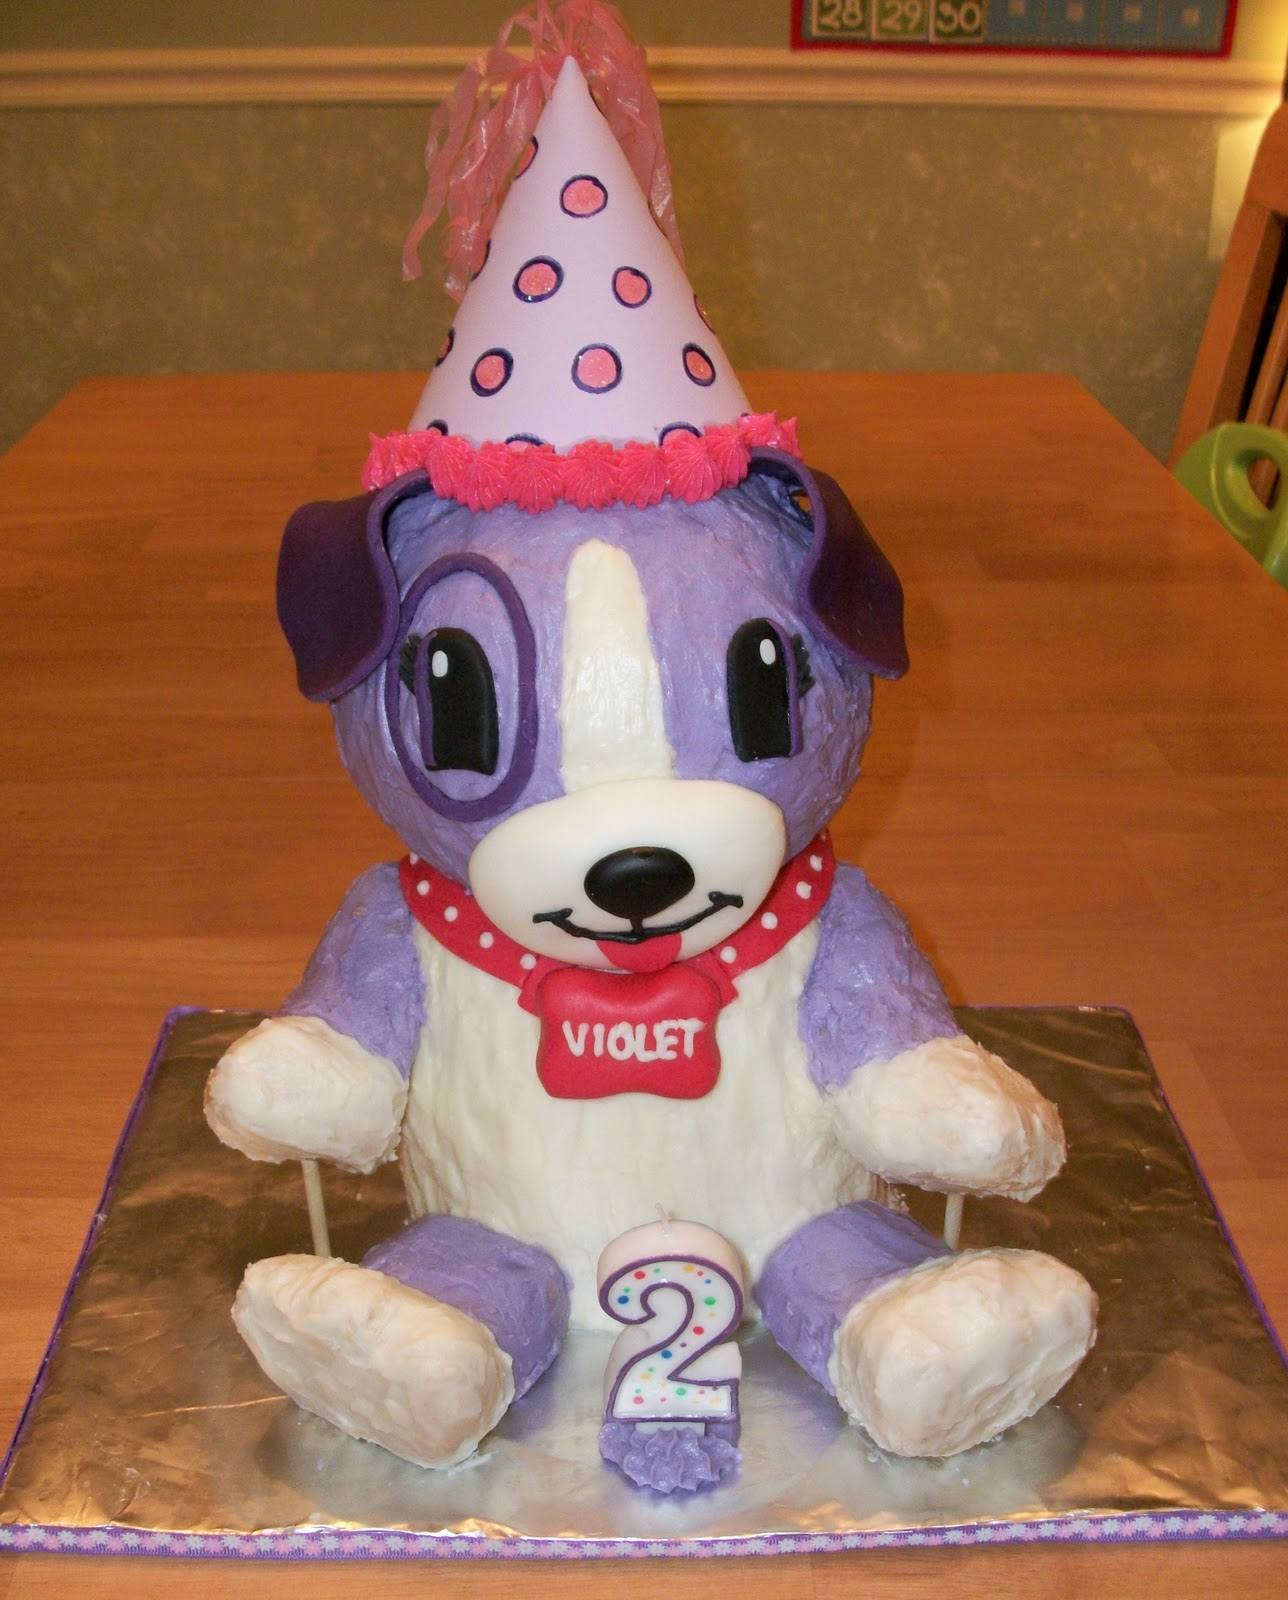 Bellissimo Specialty Cakes Maeves 2nd Birthday Cake 1110